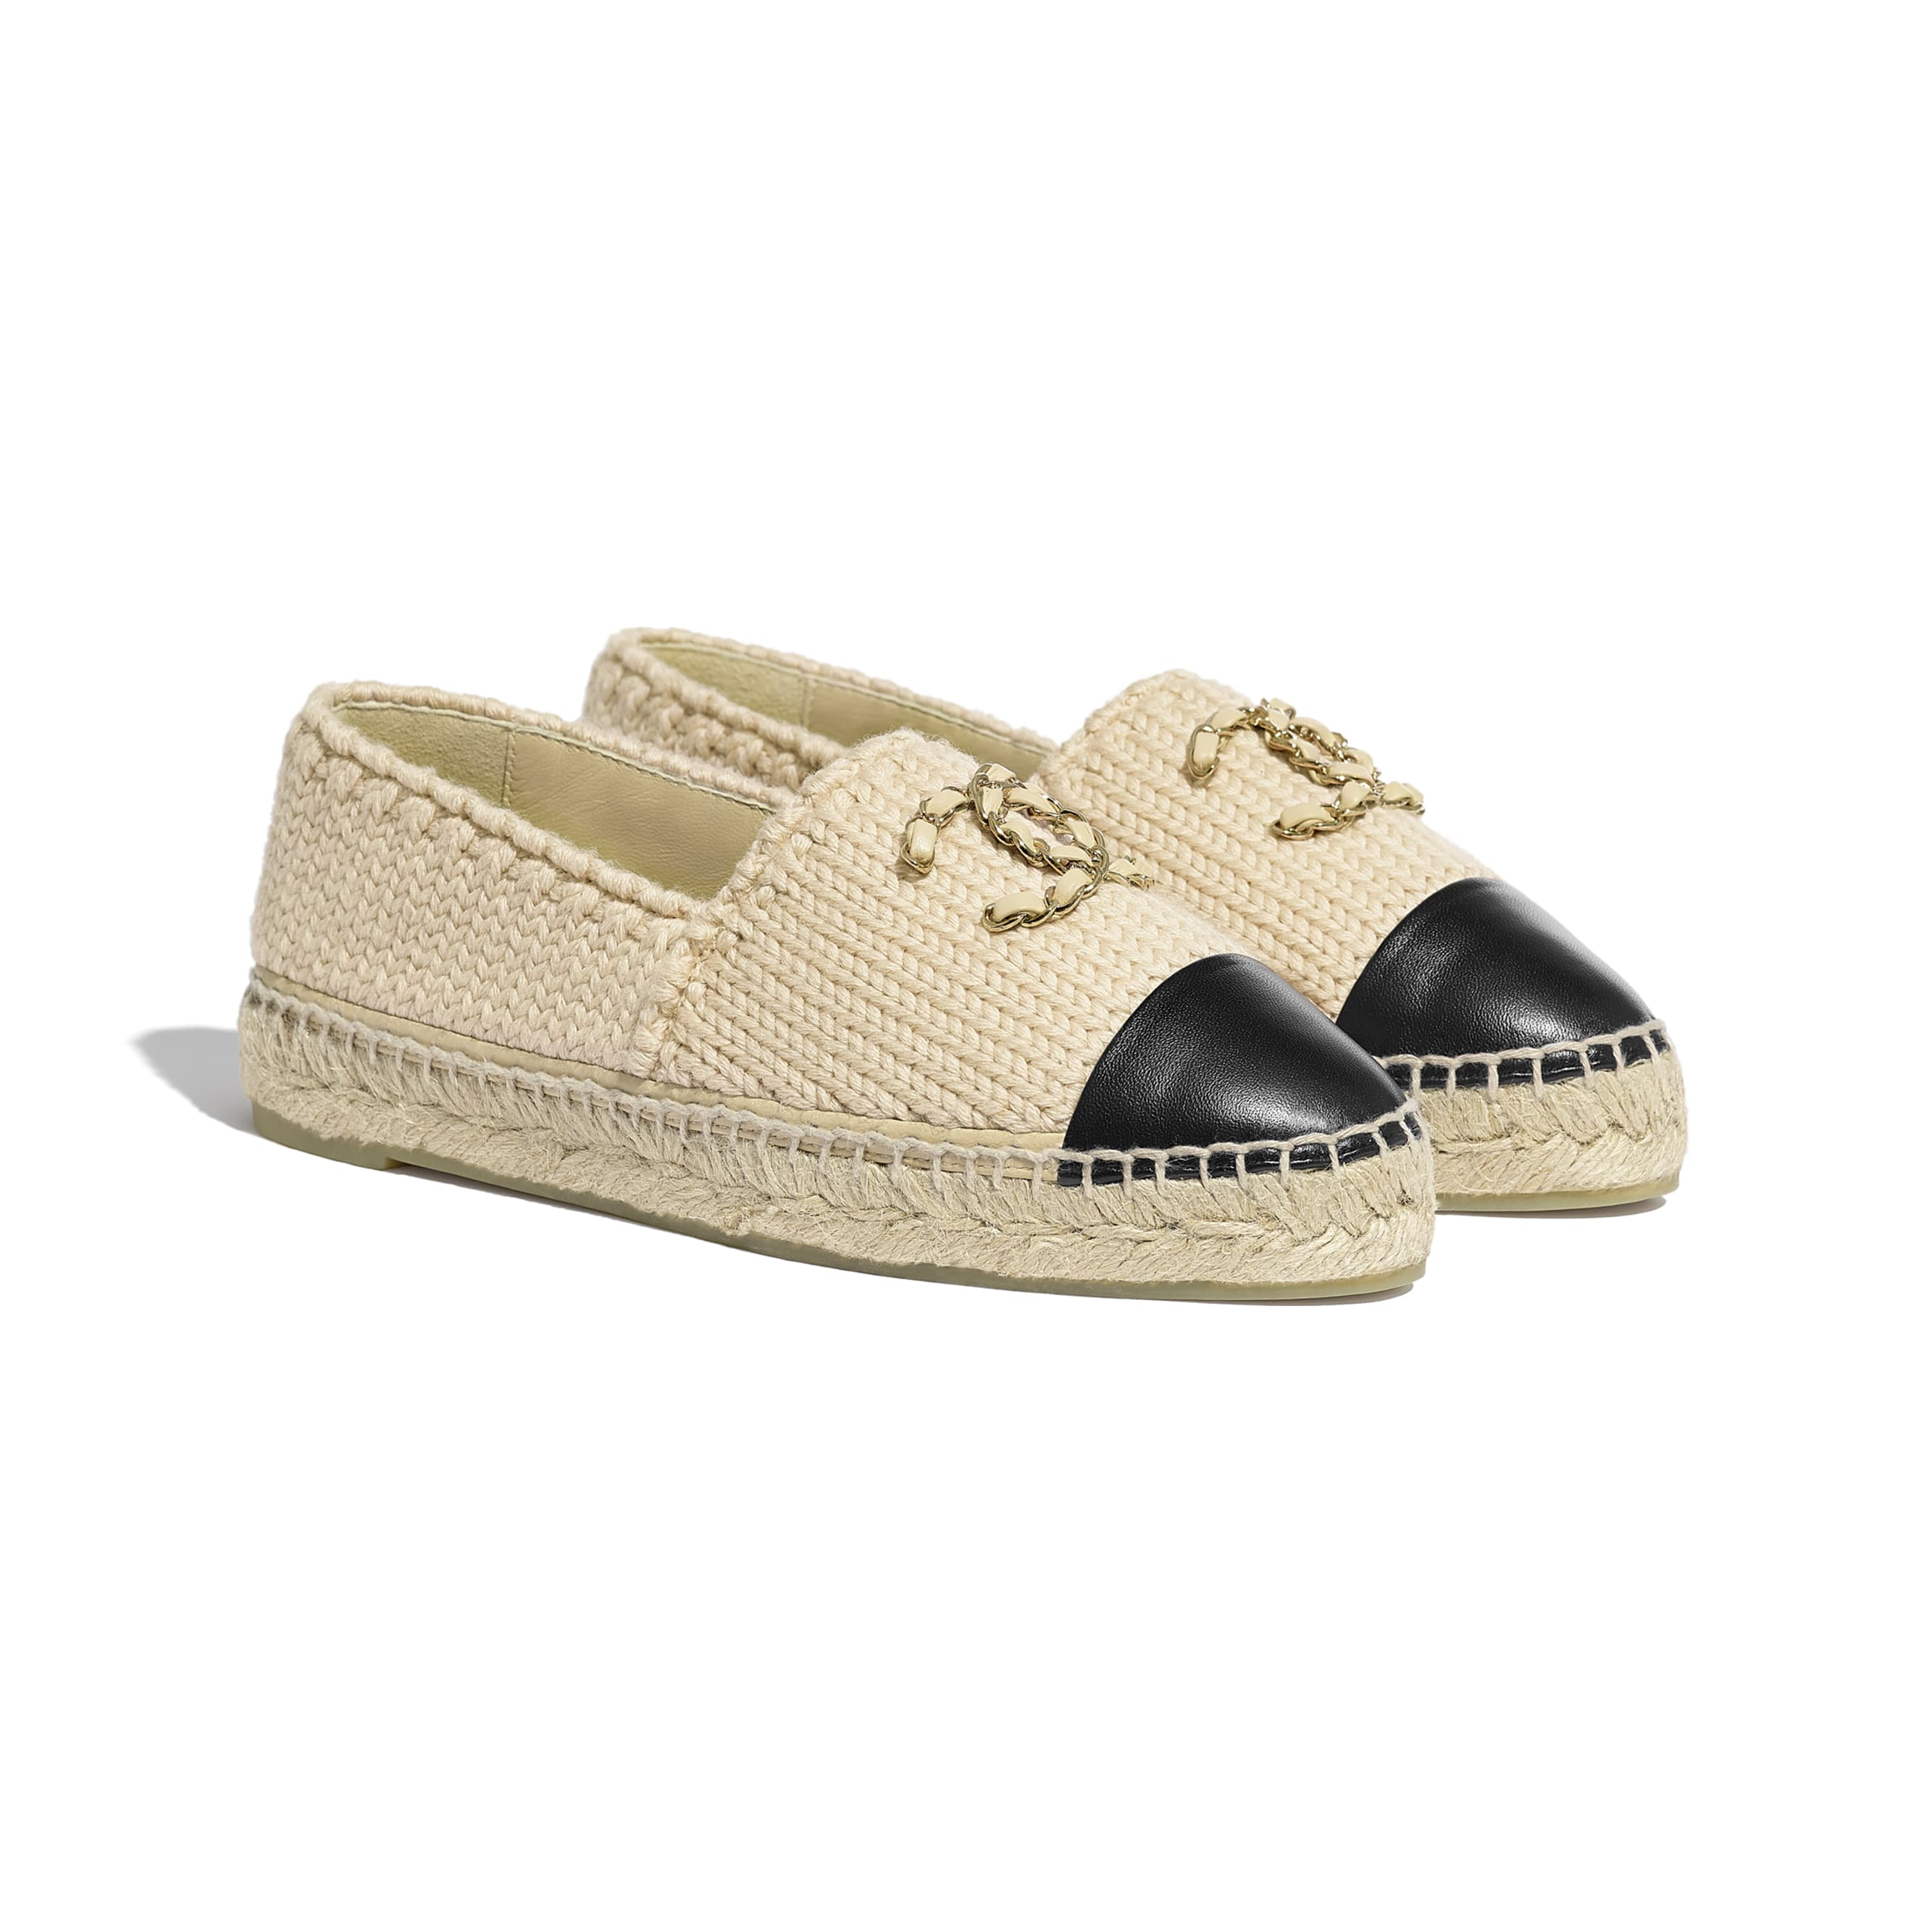 Espadrilles - Beige & Black - Knitted Wool & Lambskin - CHANEL - Alternative view - see standard sized version